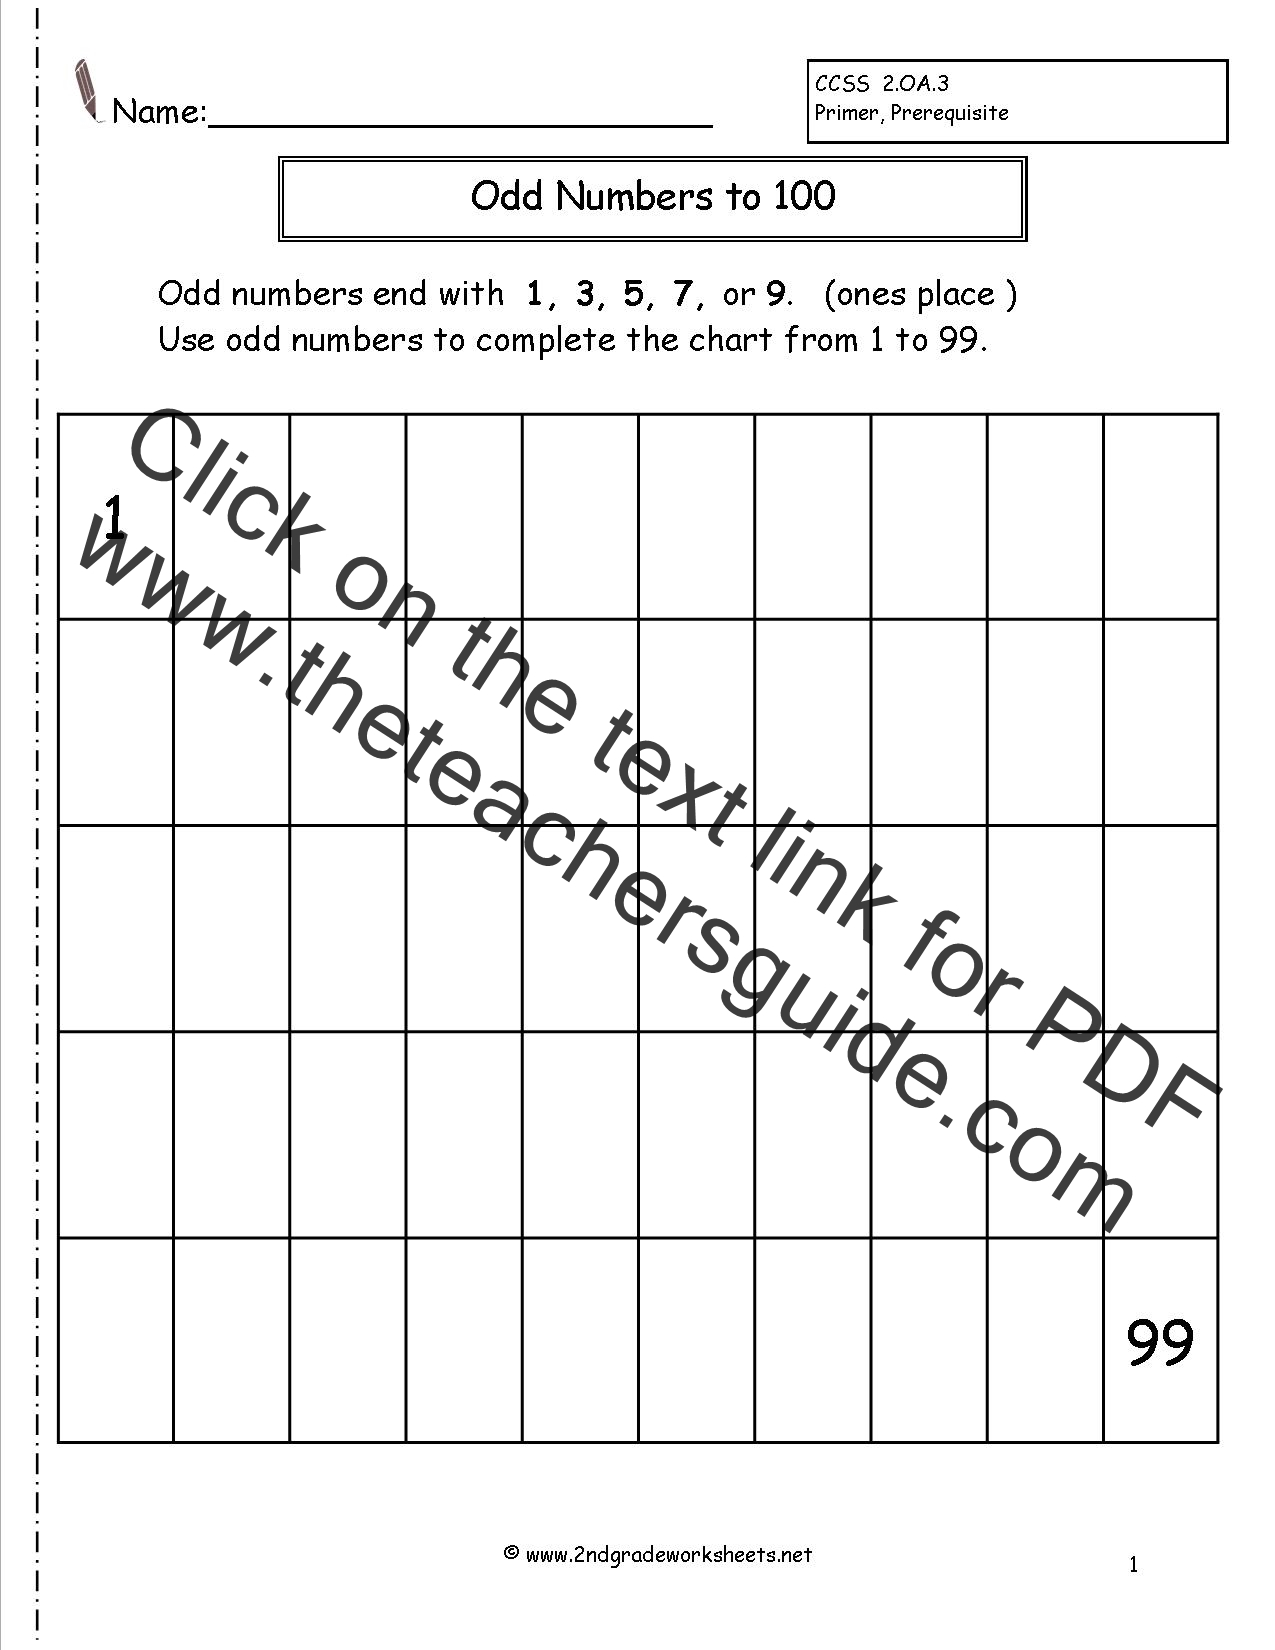 Even and Odd Numbers Worksheets – Even and Odd Numbers Worksheets